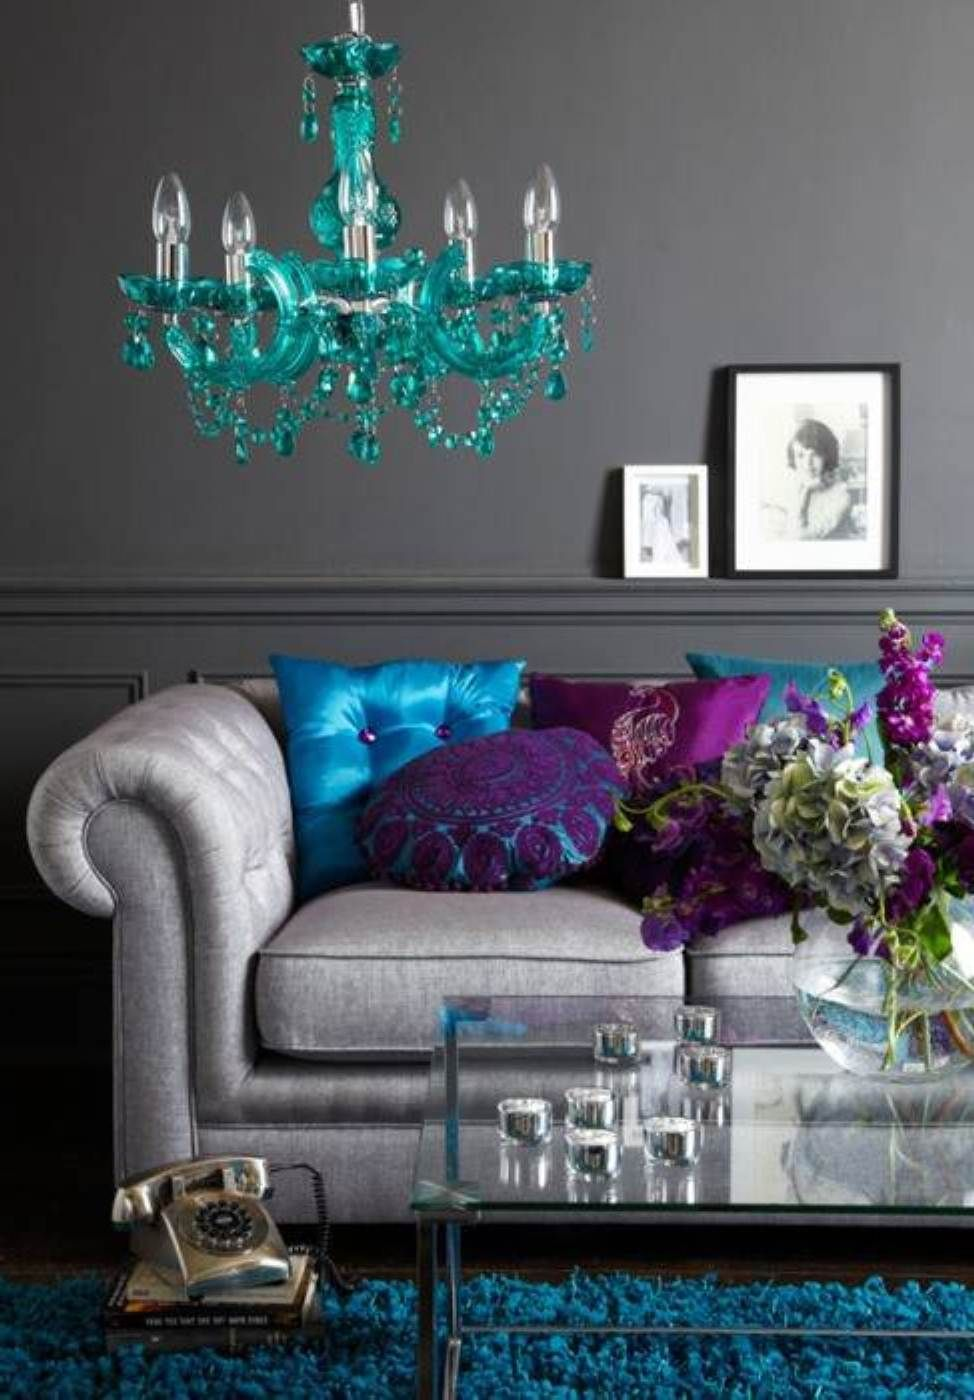 wall colors paint colors turquoise chandelier colors for living room